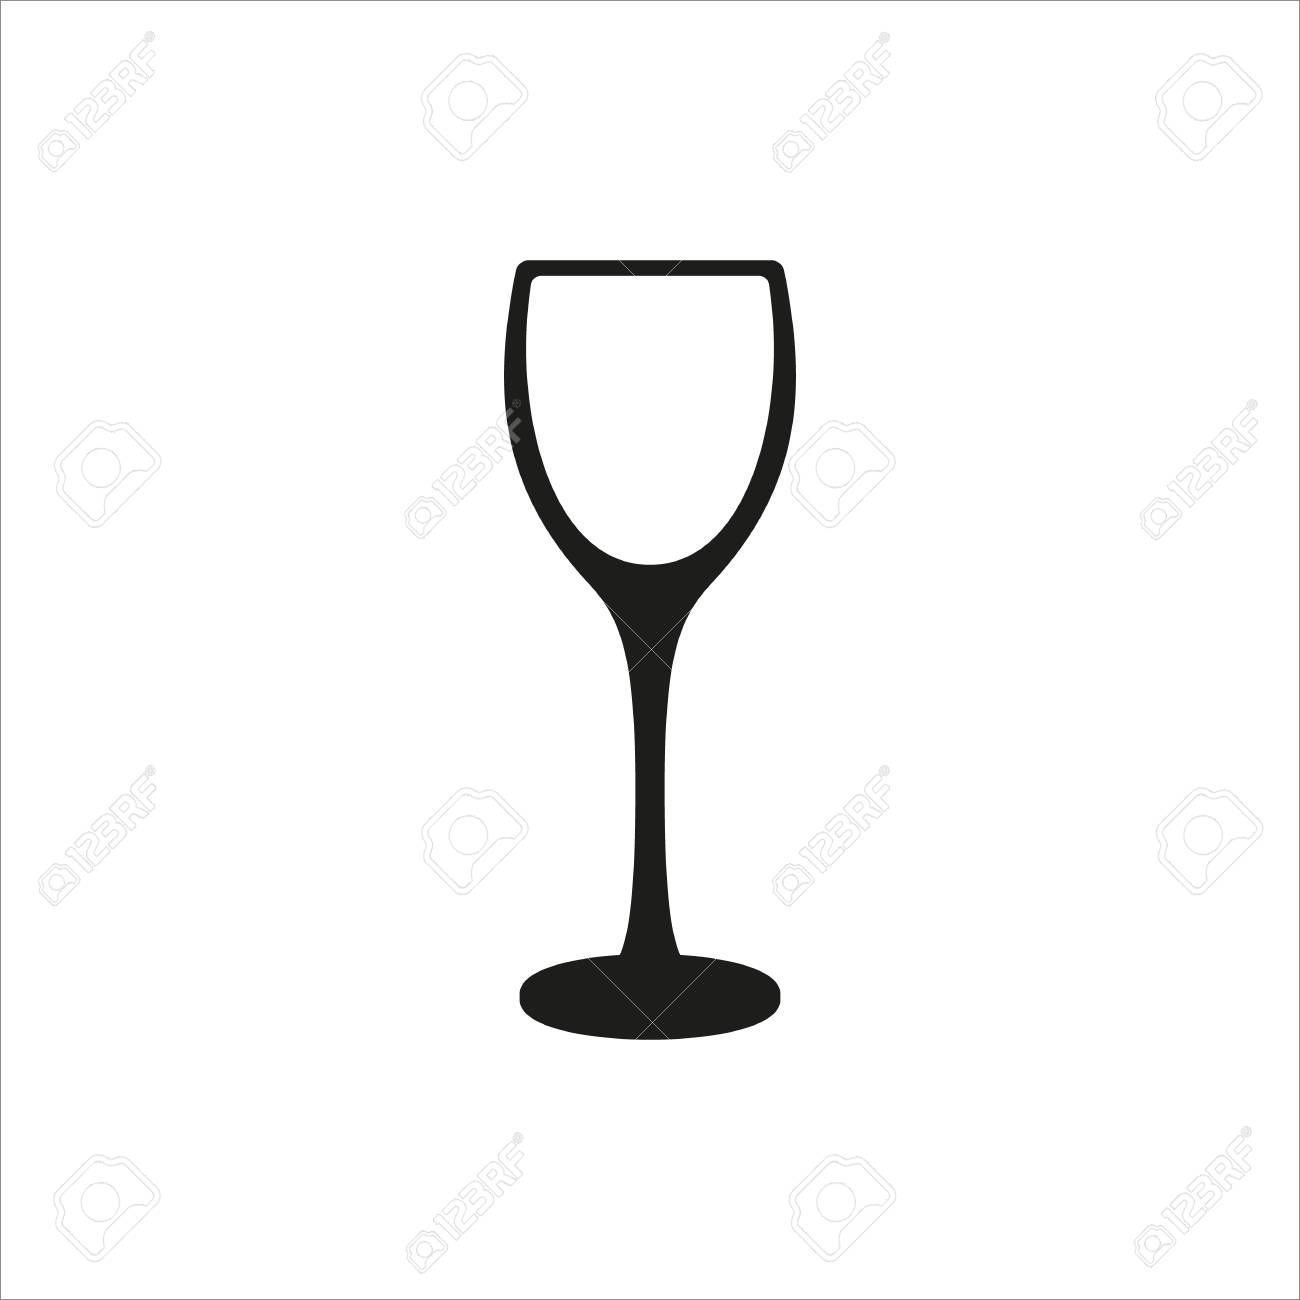 empty wine glass icon Created For Mobile, Web, Decor, Print Products,...